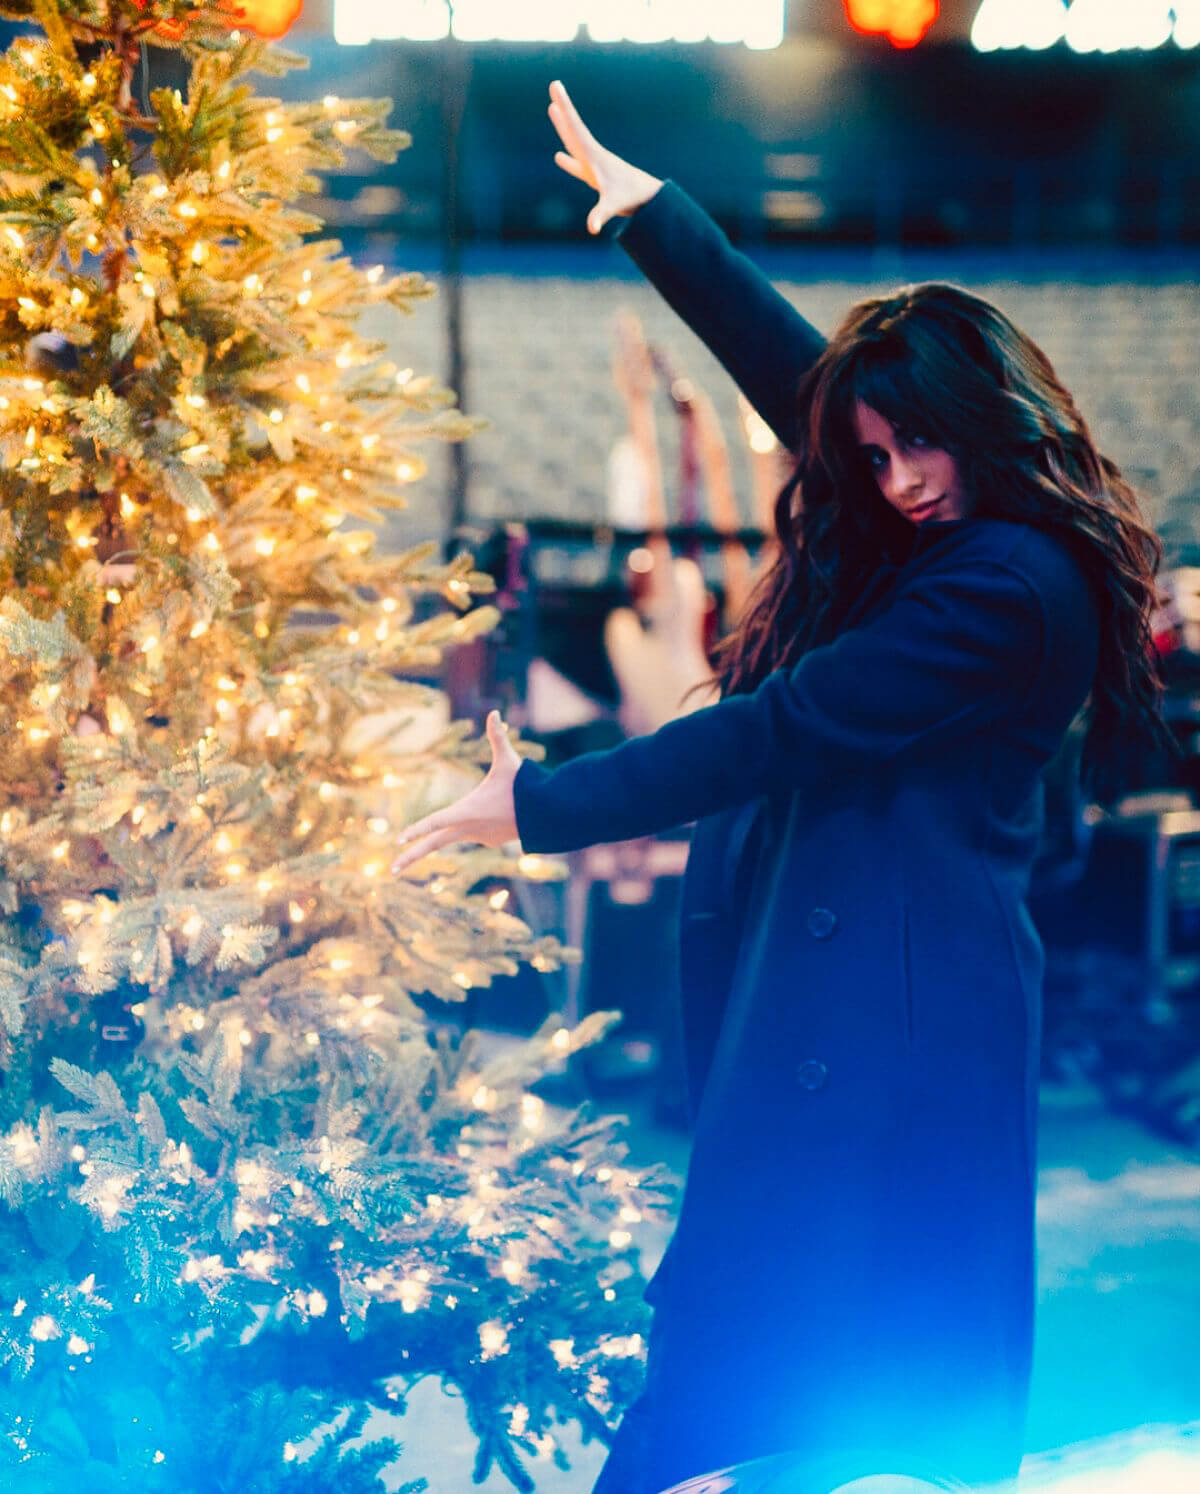 Camila Cabello at New Year's Eve on Instagram Pictures 2018/12/31 1